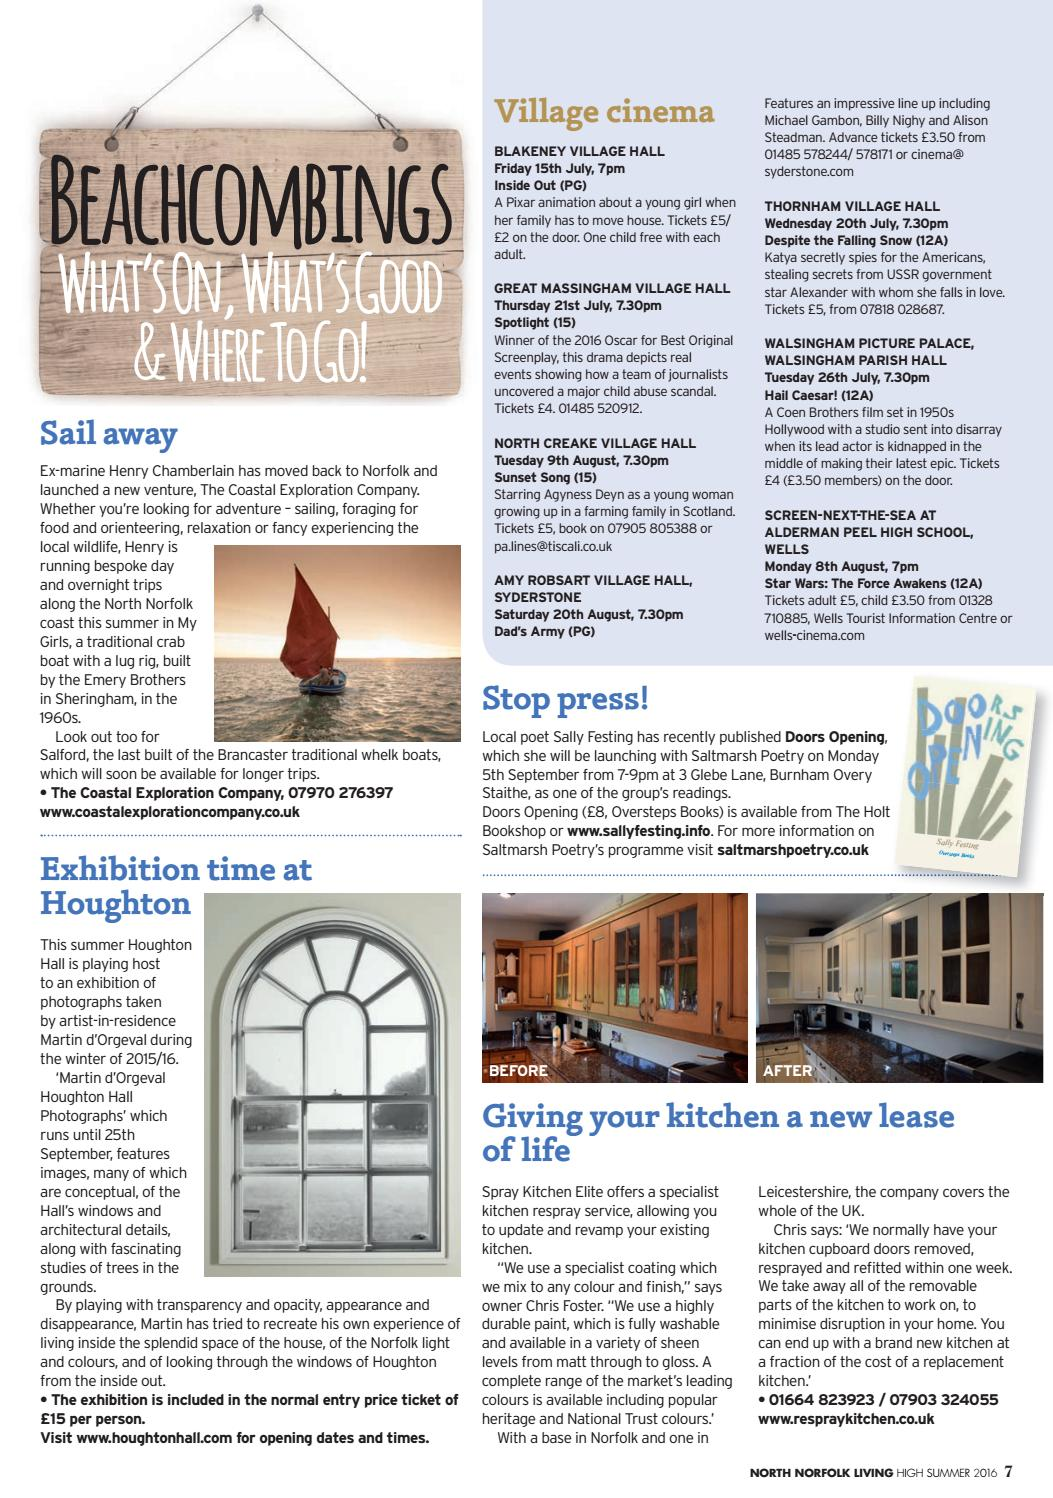 North Norfolk Living High Summer 2016 by Best Local Living - issuu